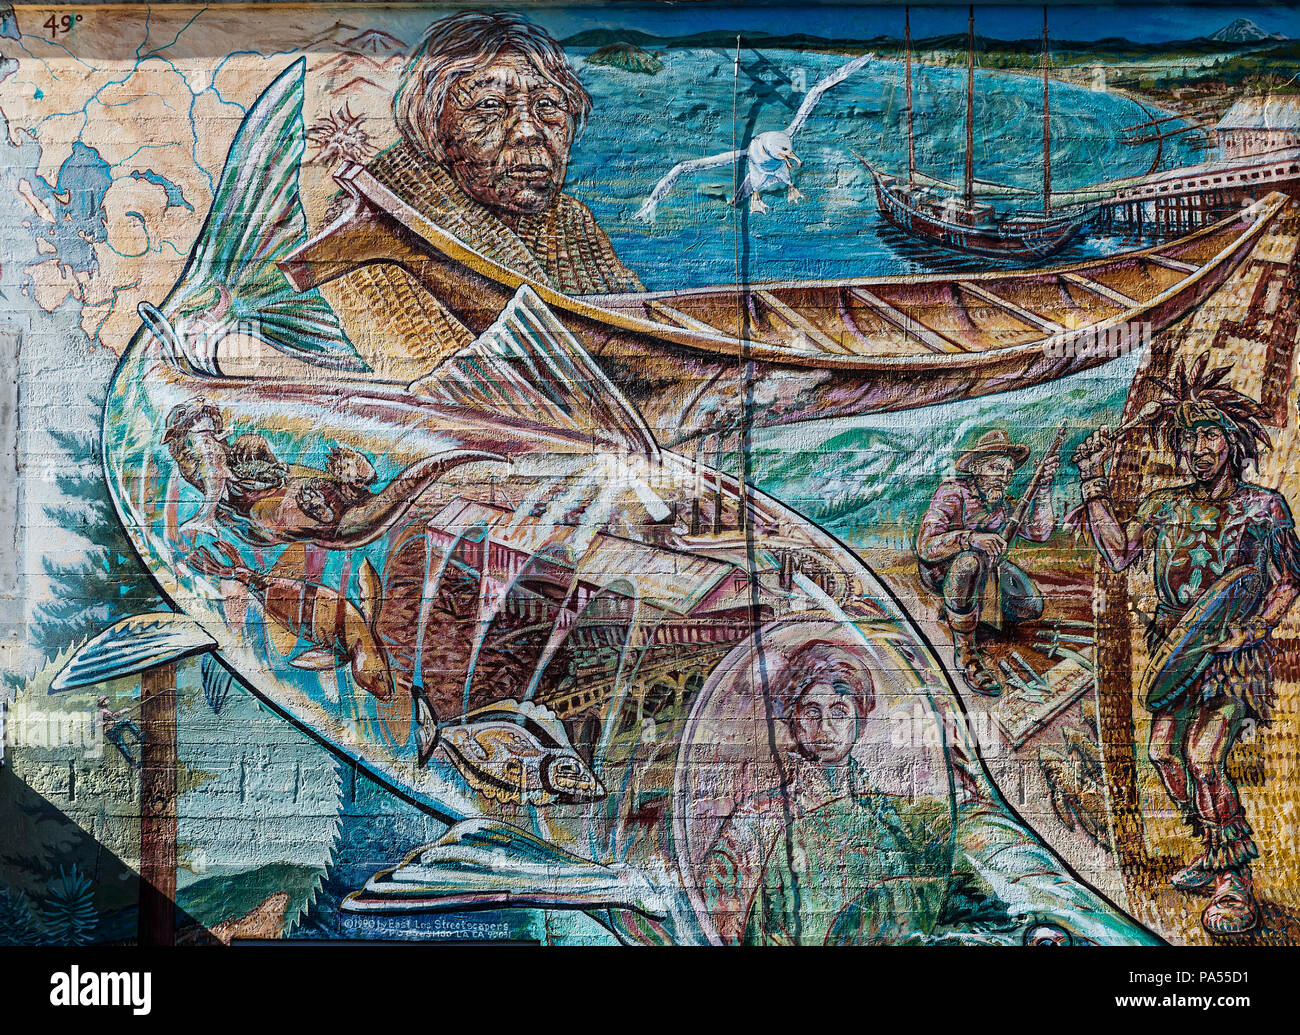 Mural depicting local native american culture, Bellingham, Washington State, USA. - Stock Image